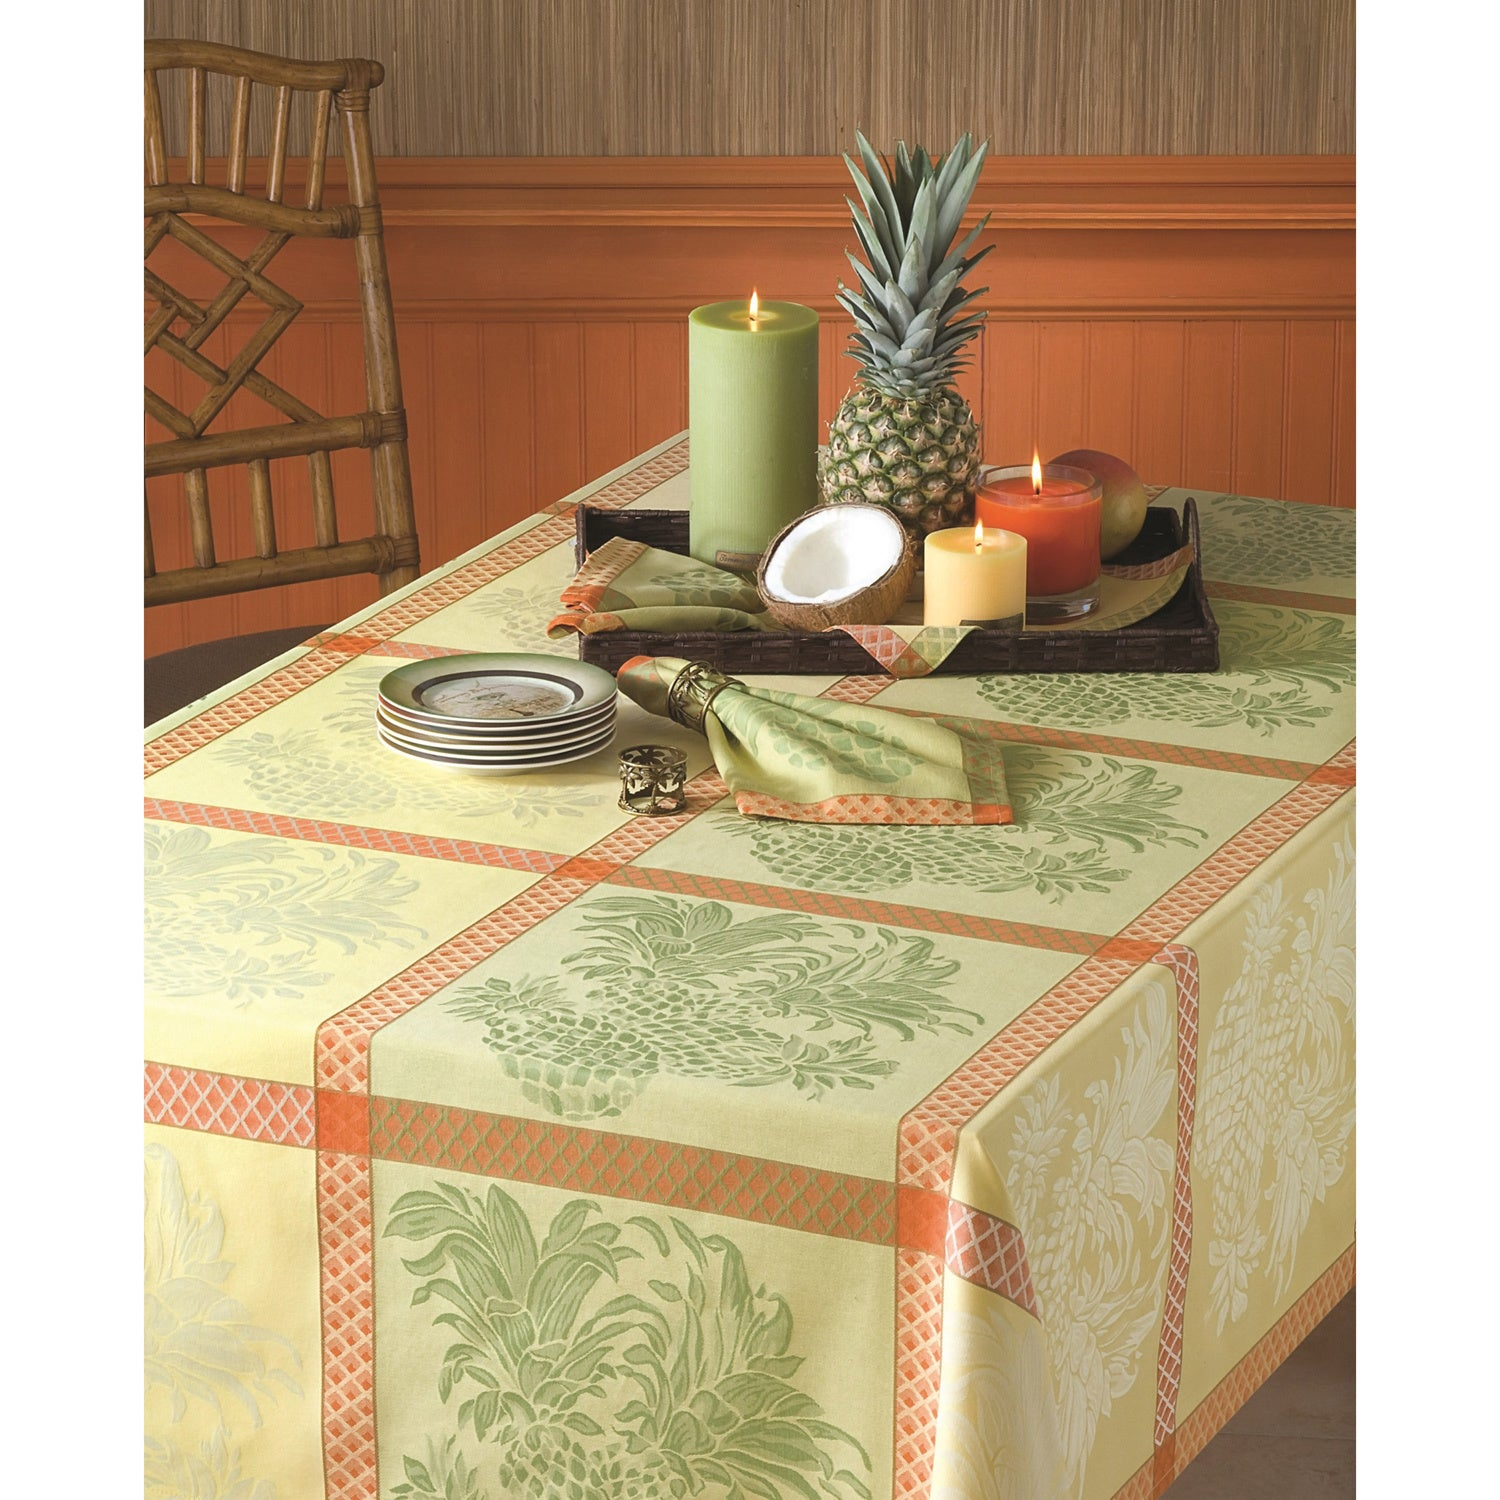 Tommy Bahama Cotton Pineapple Jacquard Tablecloth (52 x 7...